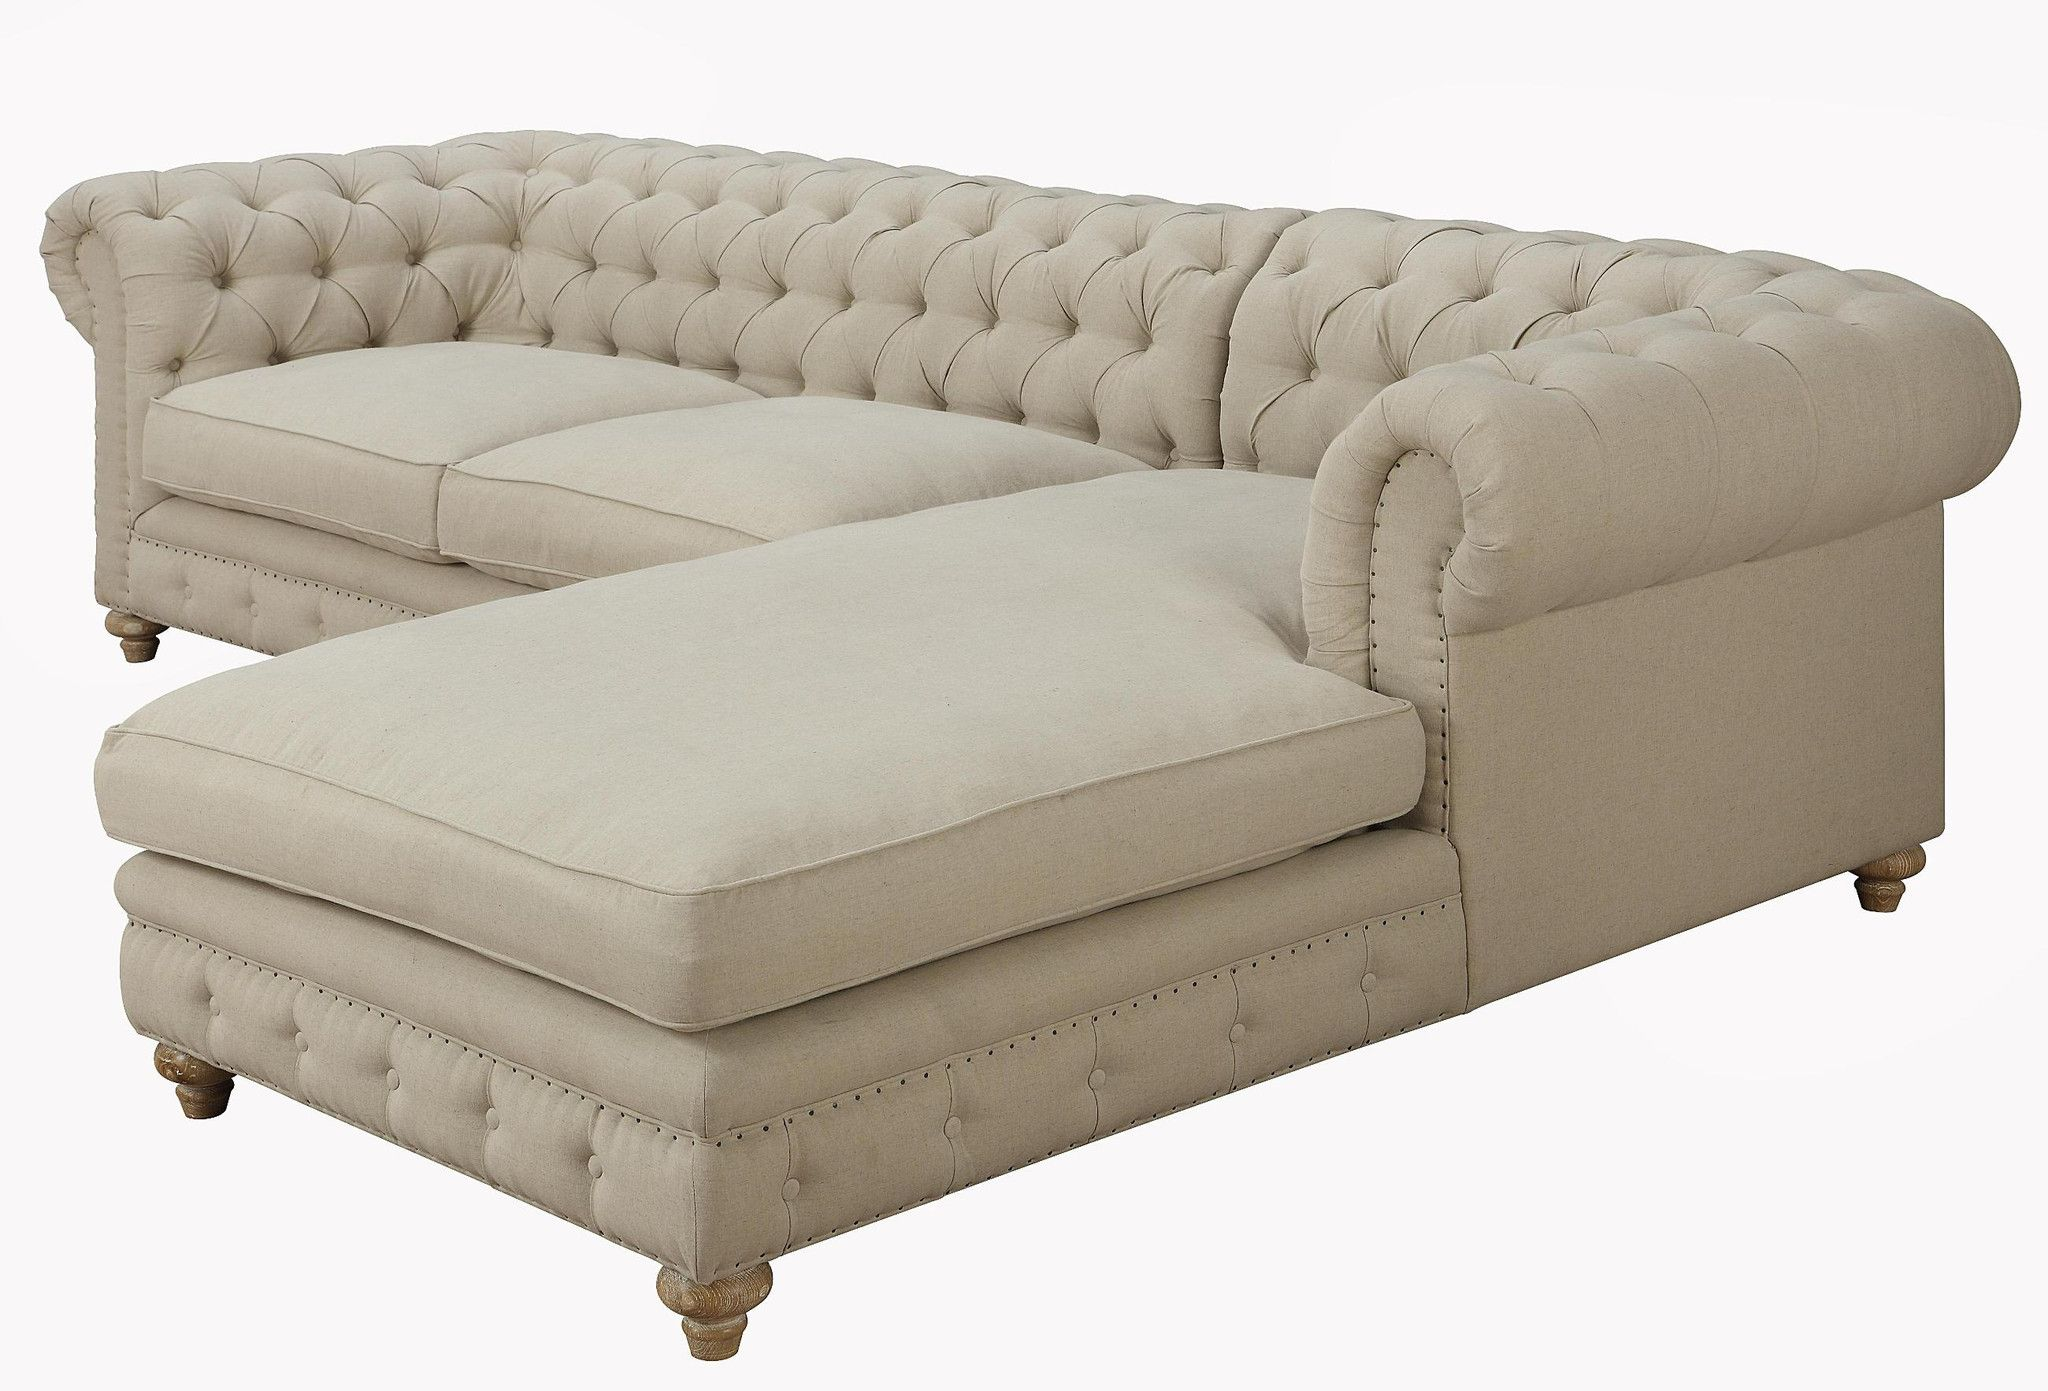 Chesterfield Linen Sectional Sofa / Couch   EMFURN